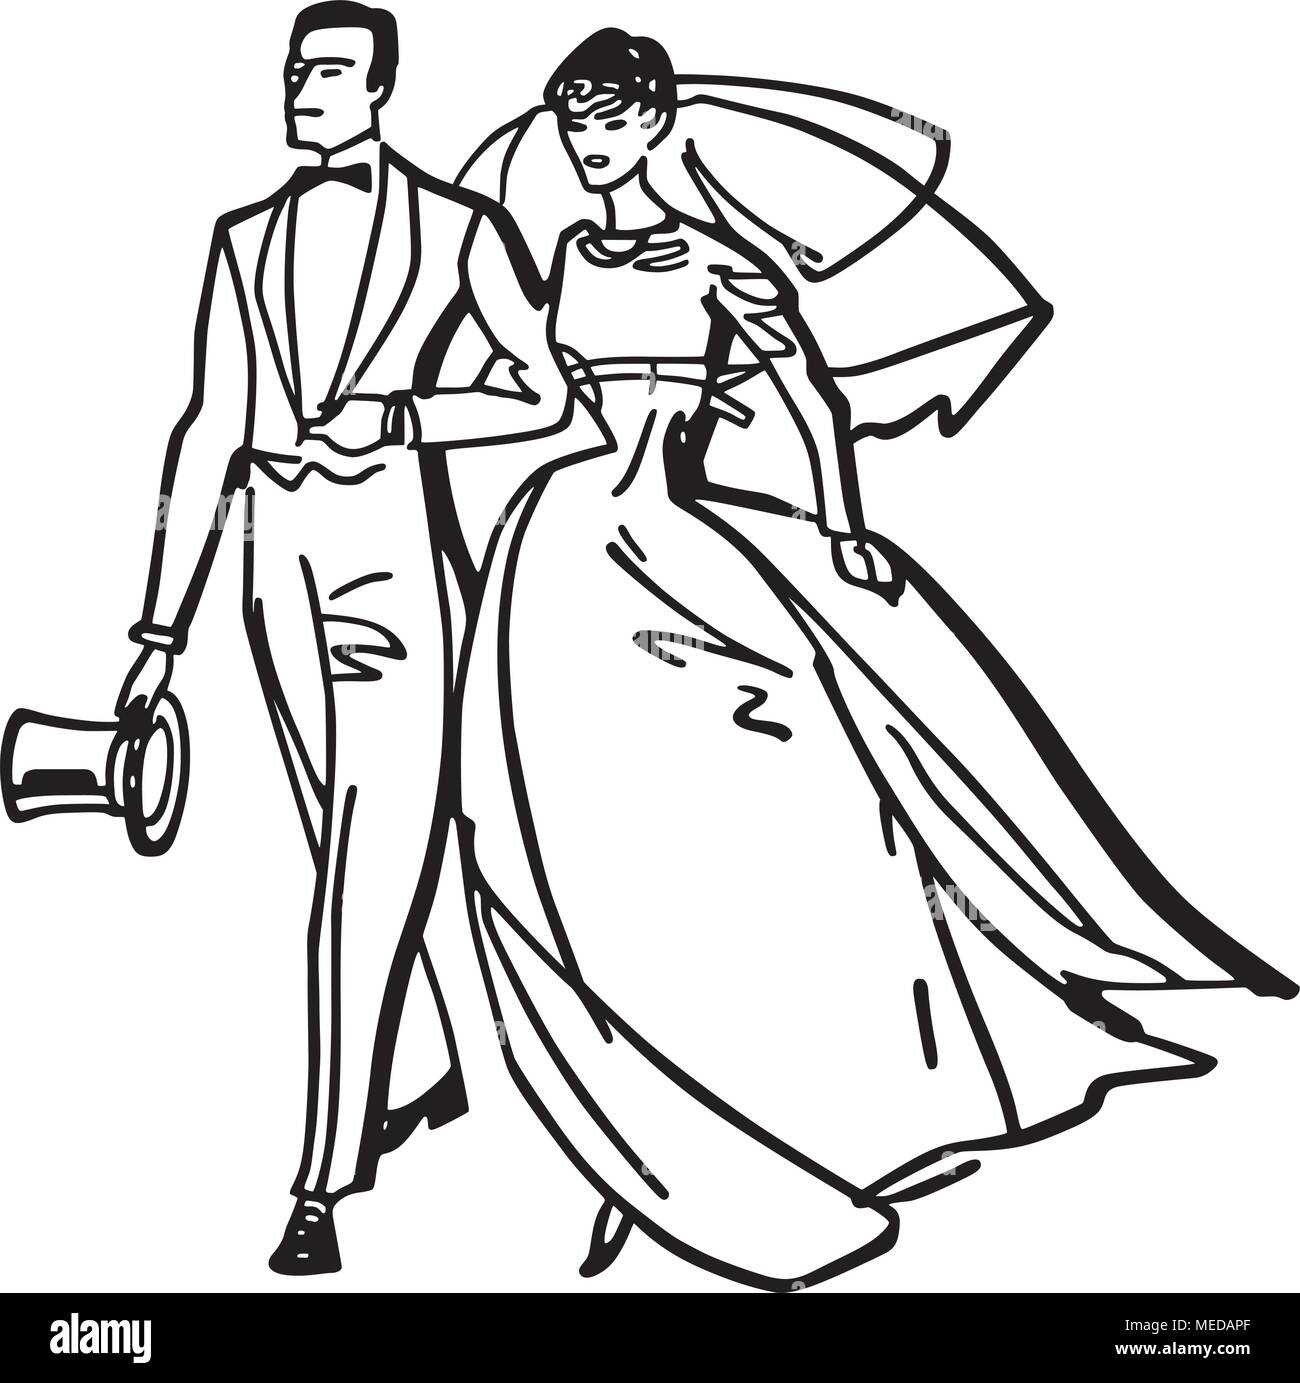 hight resolution of elegant bride and groom retro clipart illustration